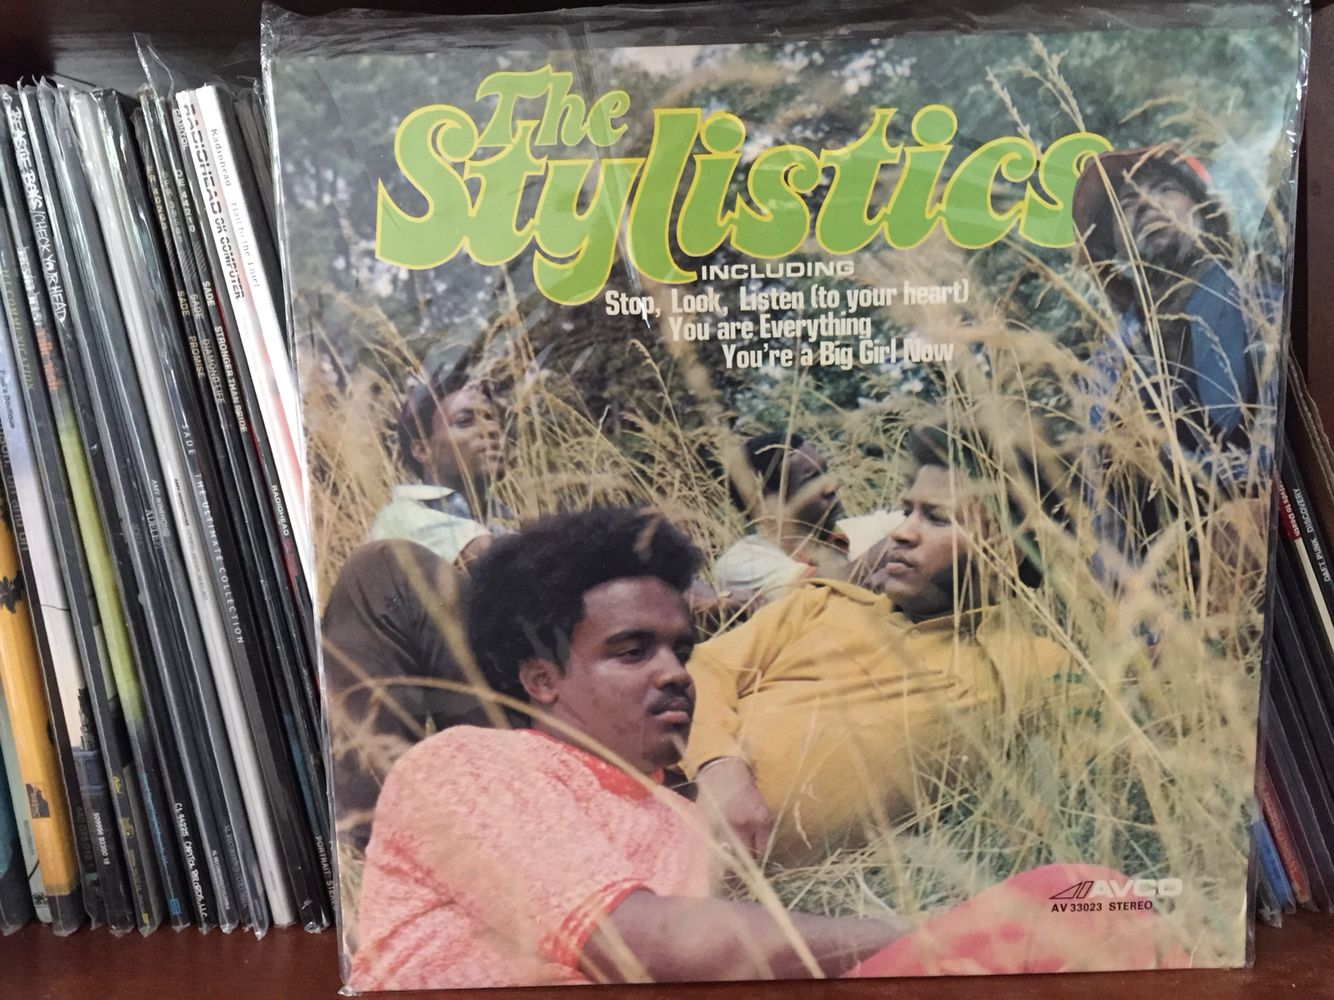 The Stylistics - You are everything is one of my faves!